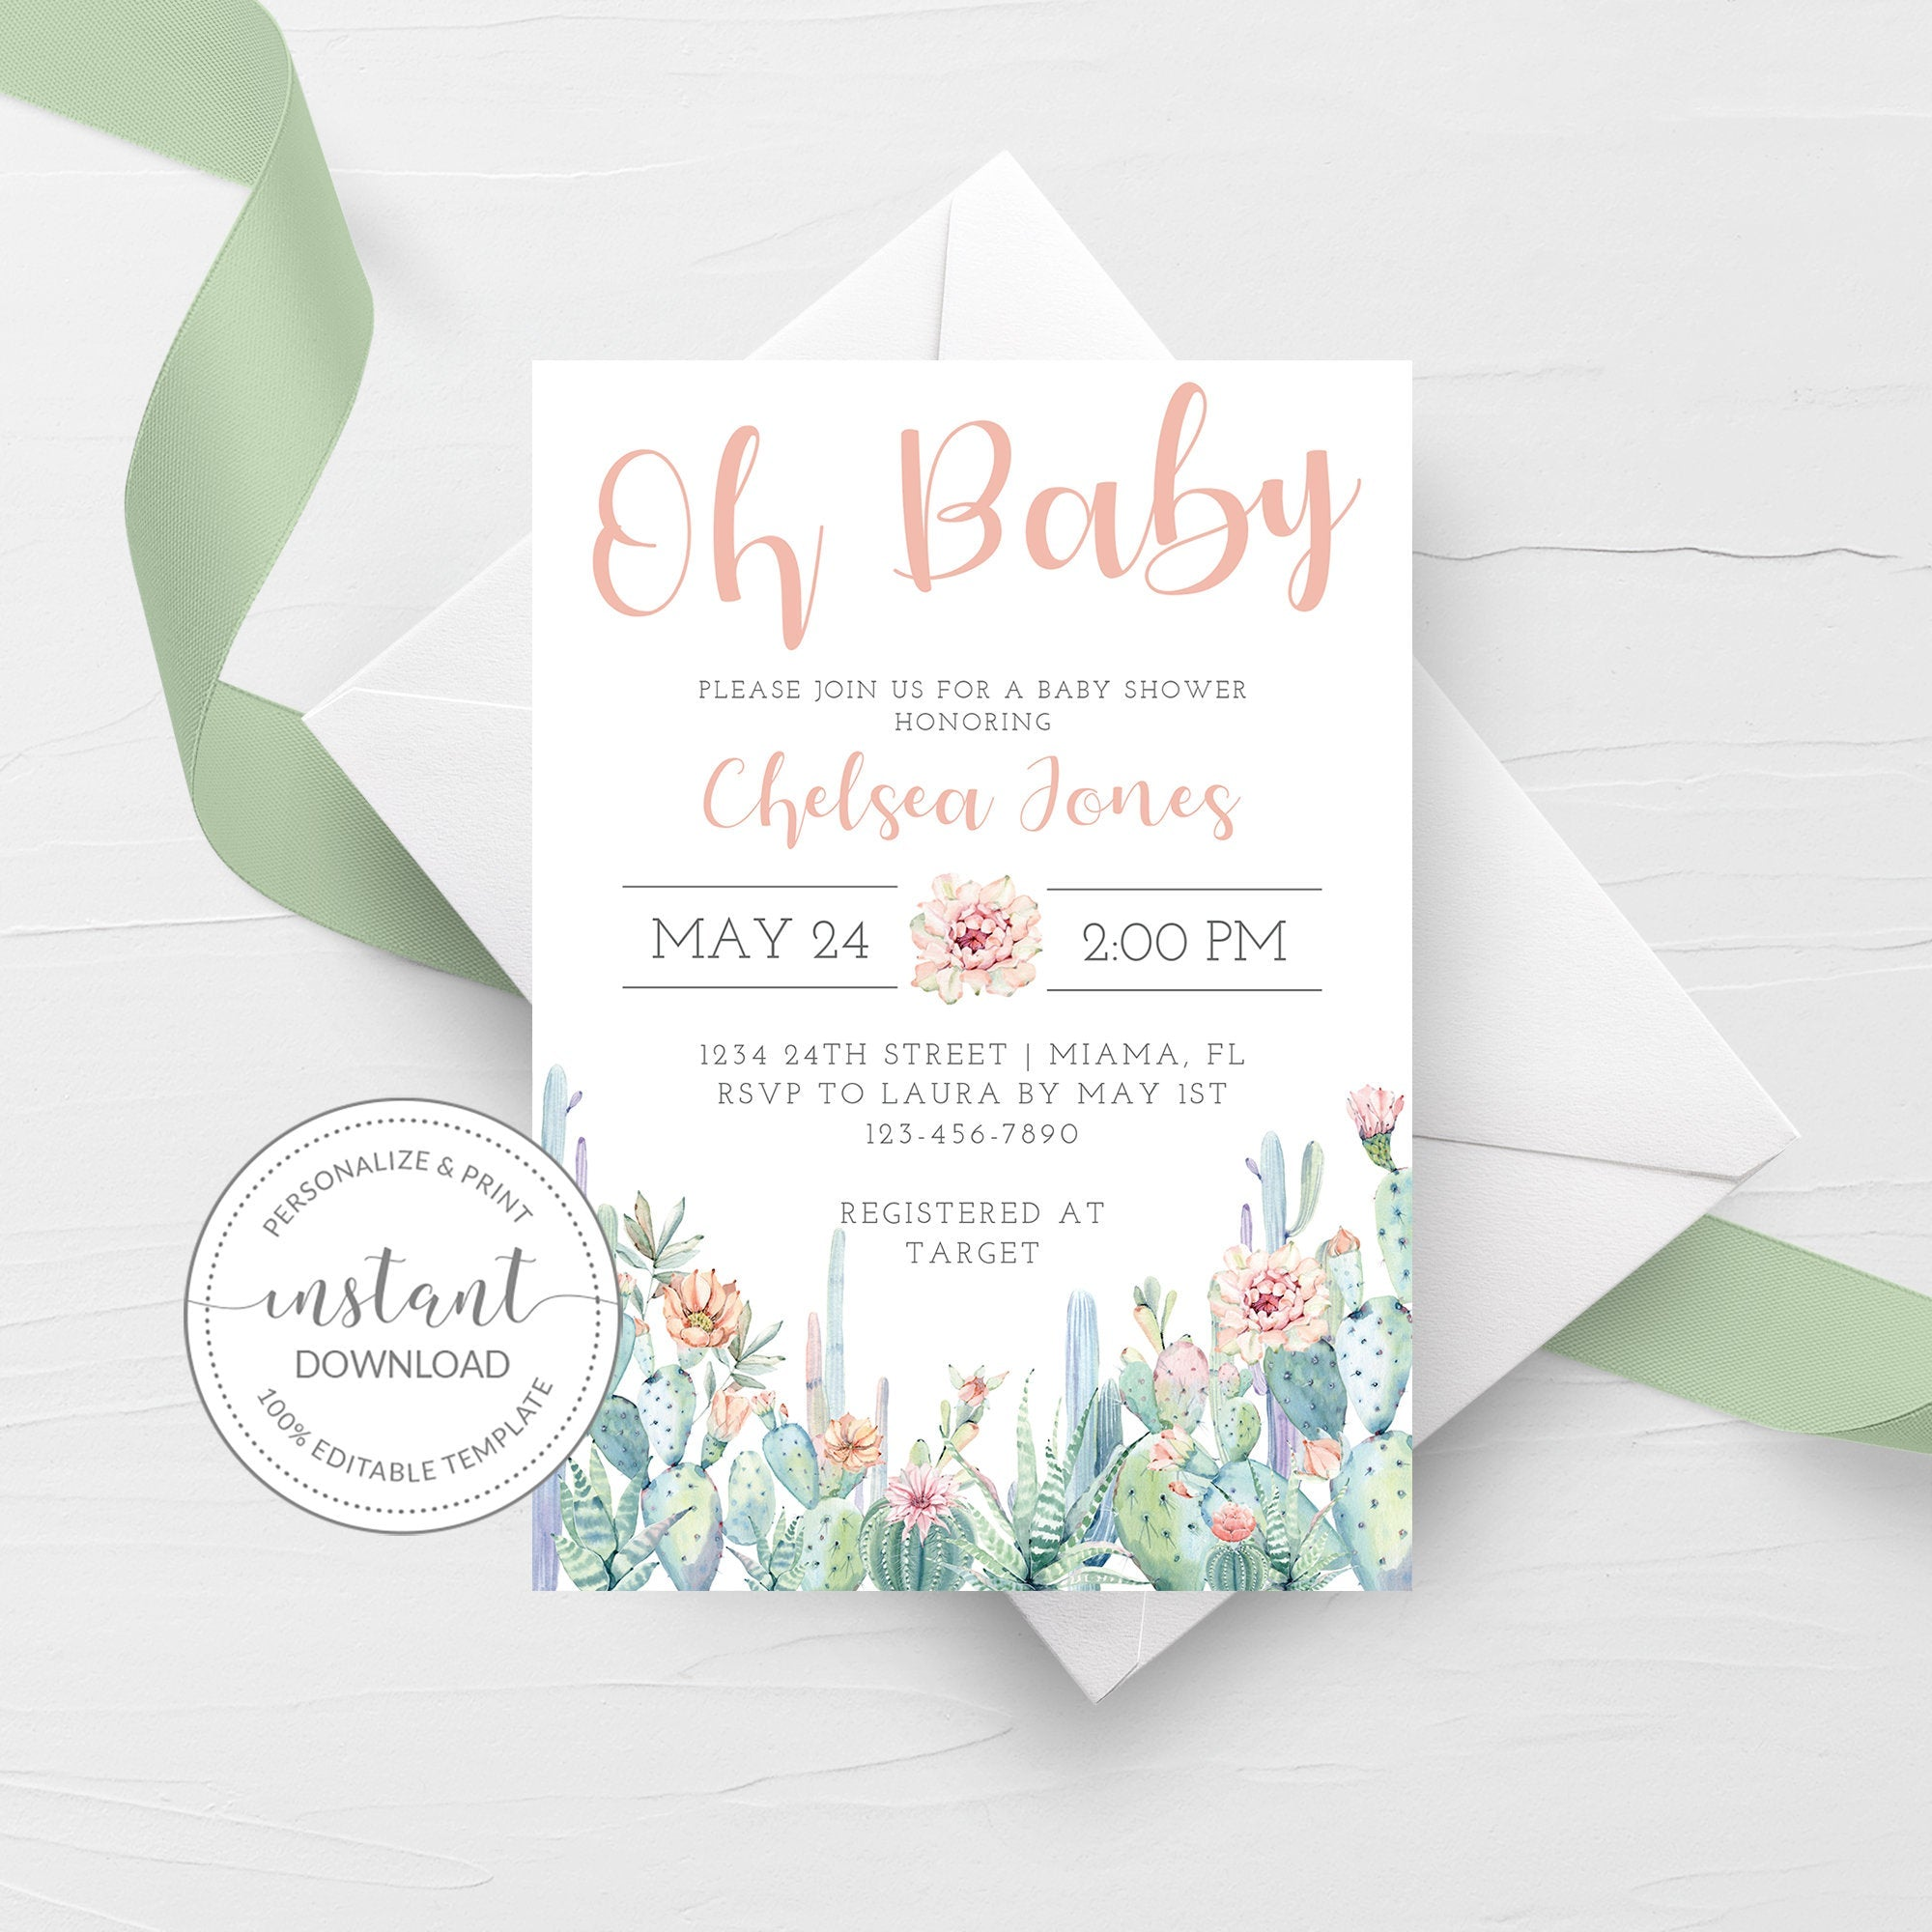 Cactus Baby Shower Invitation, Girl Baby Shower Invitation Template, Editable DIGITAL DOWNLOAD - CS100 - @PlumPolkaDot